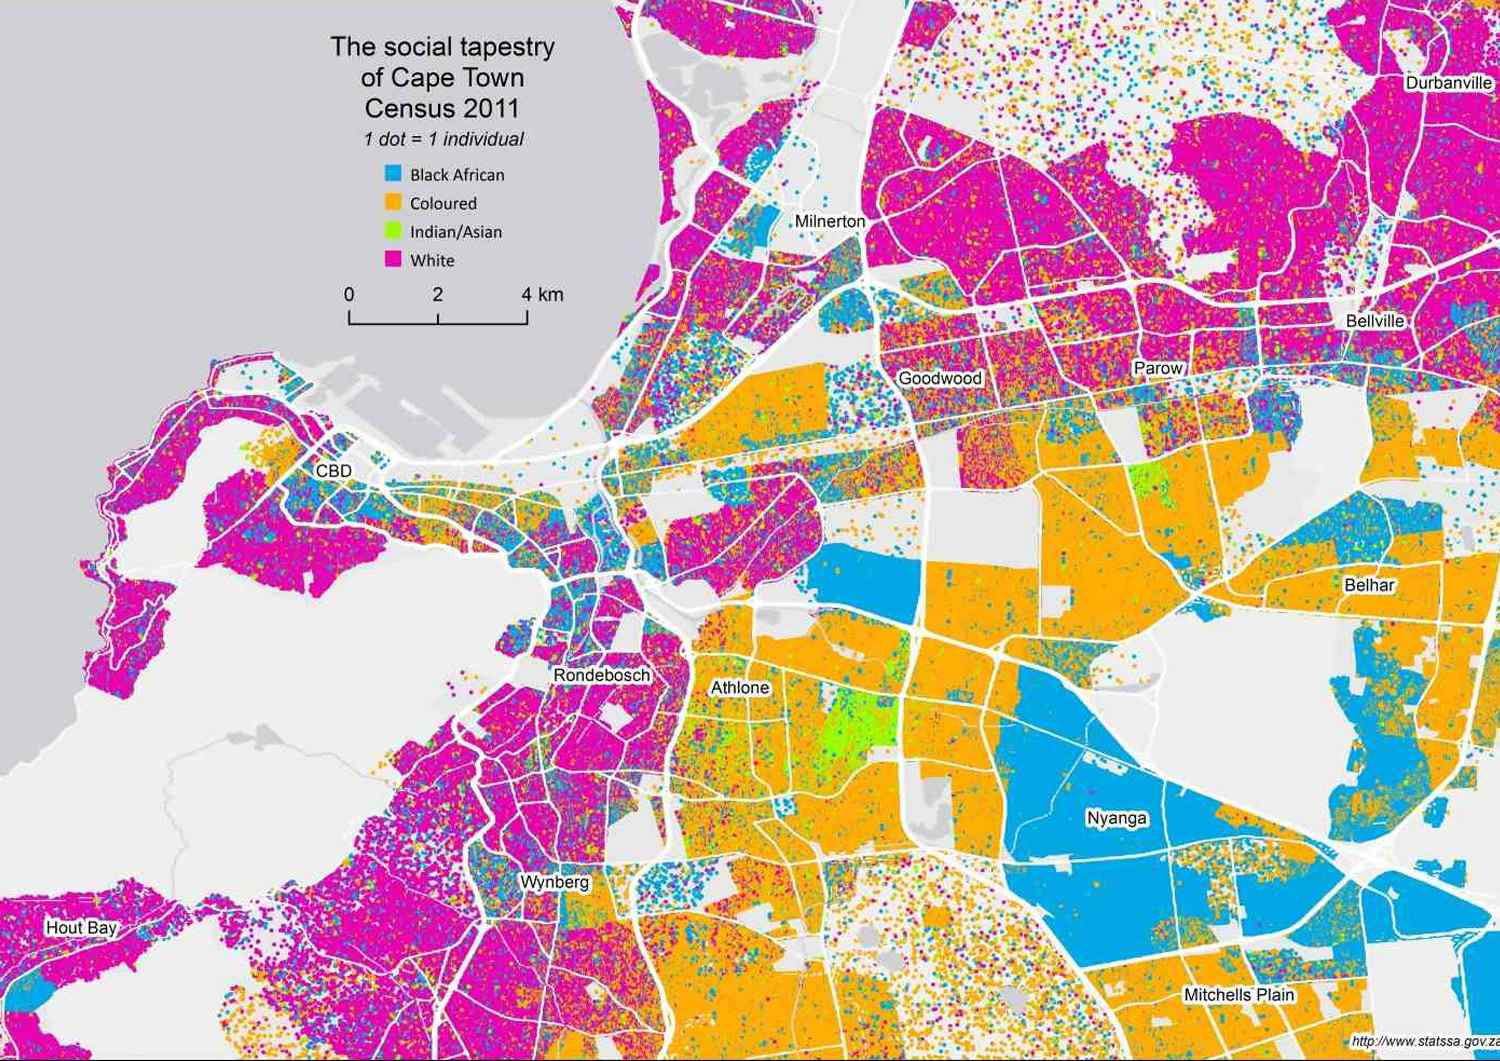 Race residential locations - Cape Town, South Africa - Urban Planning